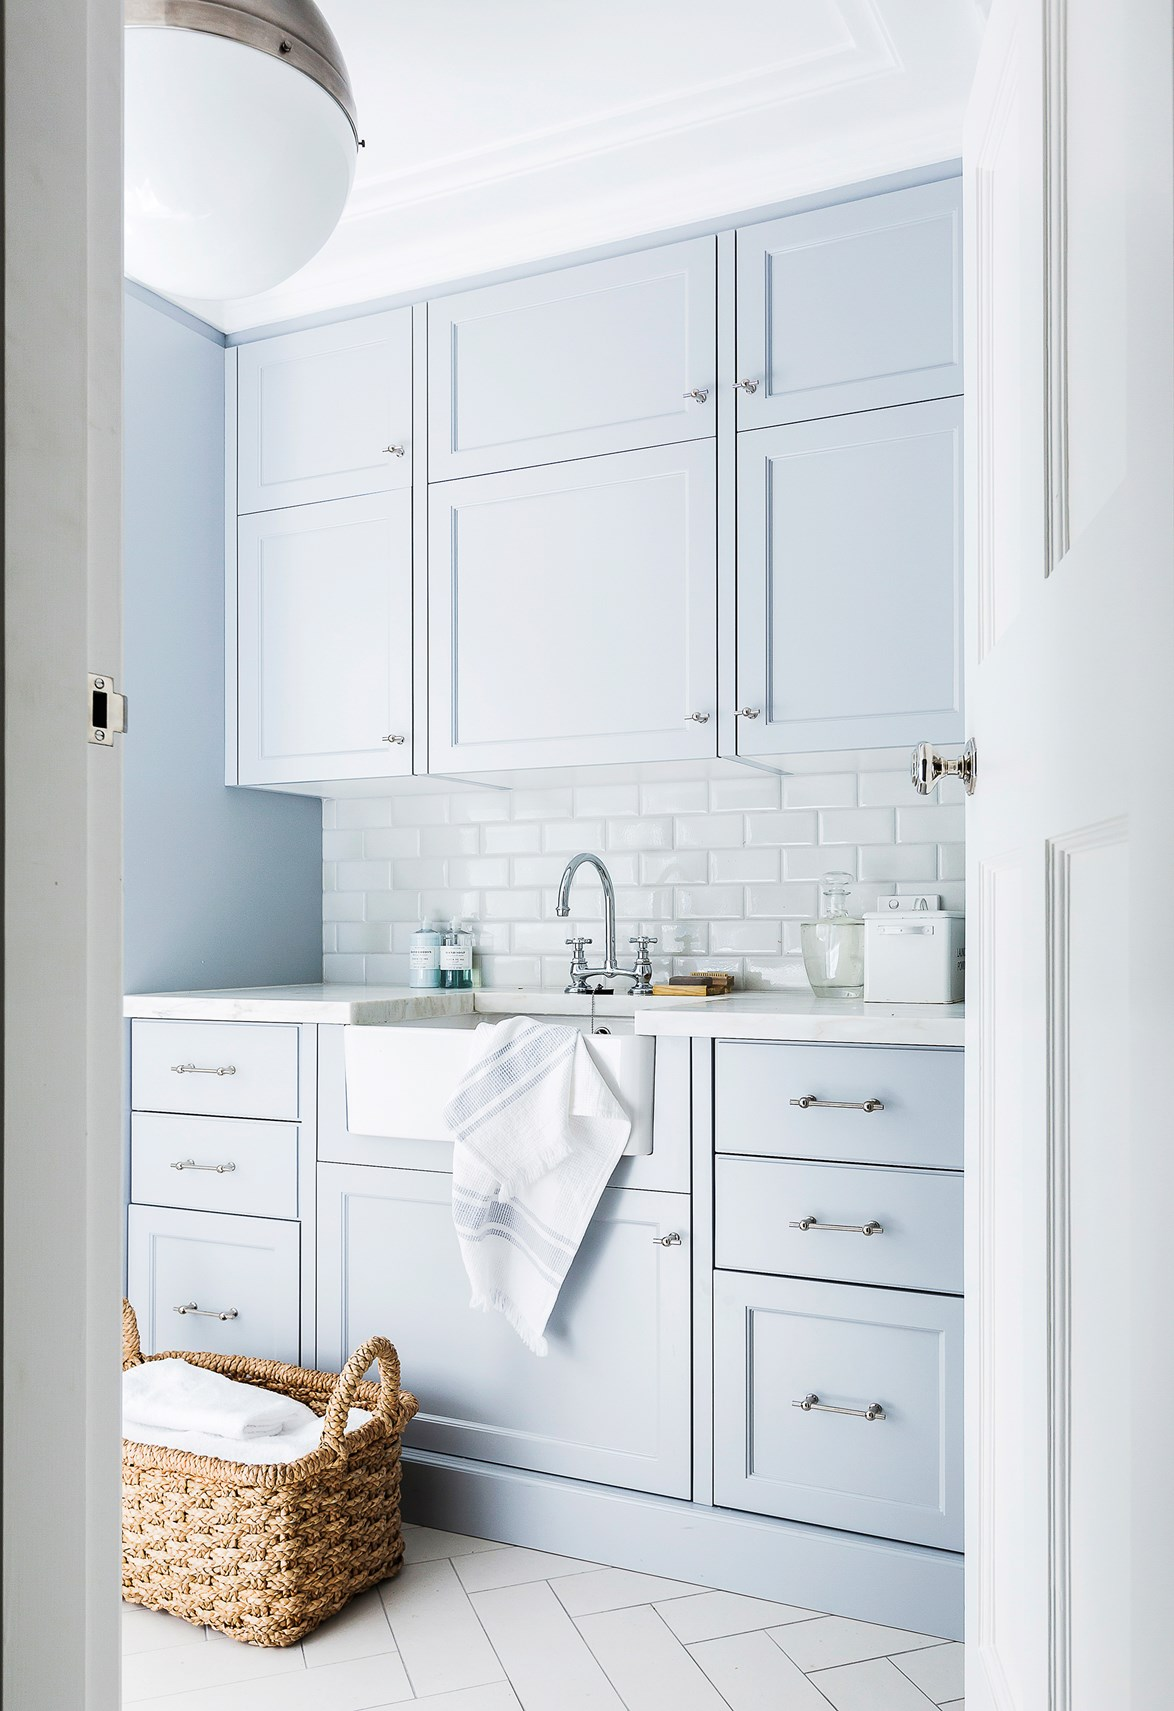 "Even one of the hardest-working rooms in the house – the laundry – can experience a modern country makeover. This space, designed by [Coco Republic](https://www.cocorepublic.com.au/|target=""_blank""), features a ceramic farmhouse sink and beautiful duck-egg blue cabinetry. *Photo: Maree Homer / bauersyndication.com.au*"